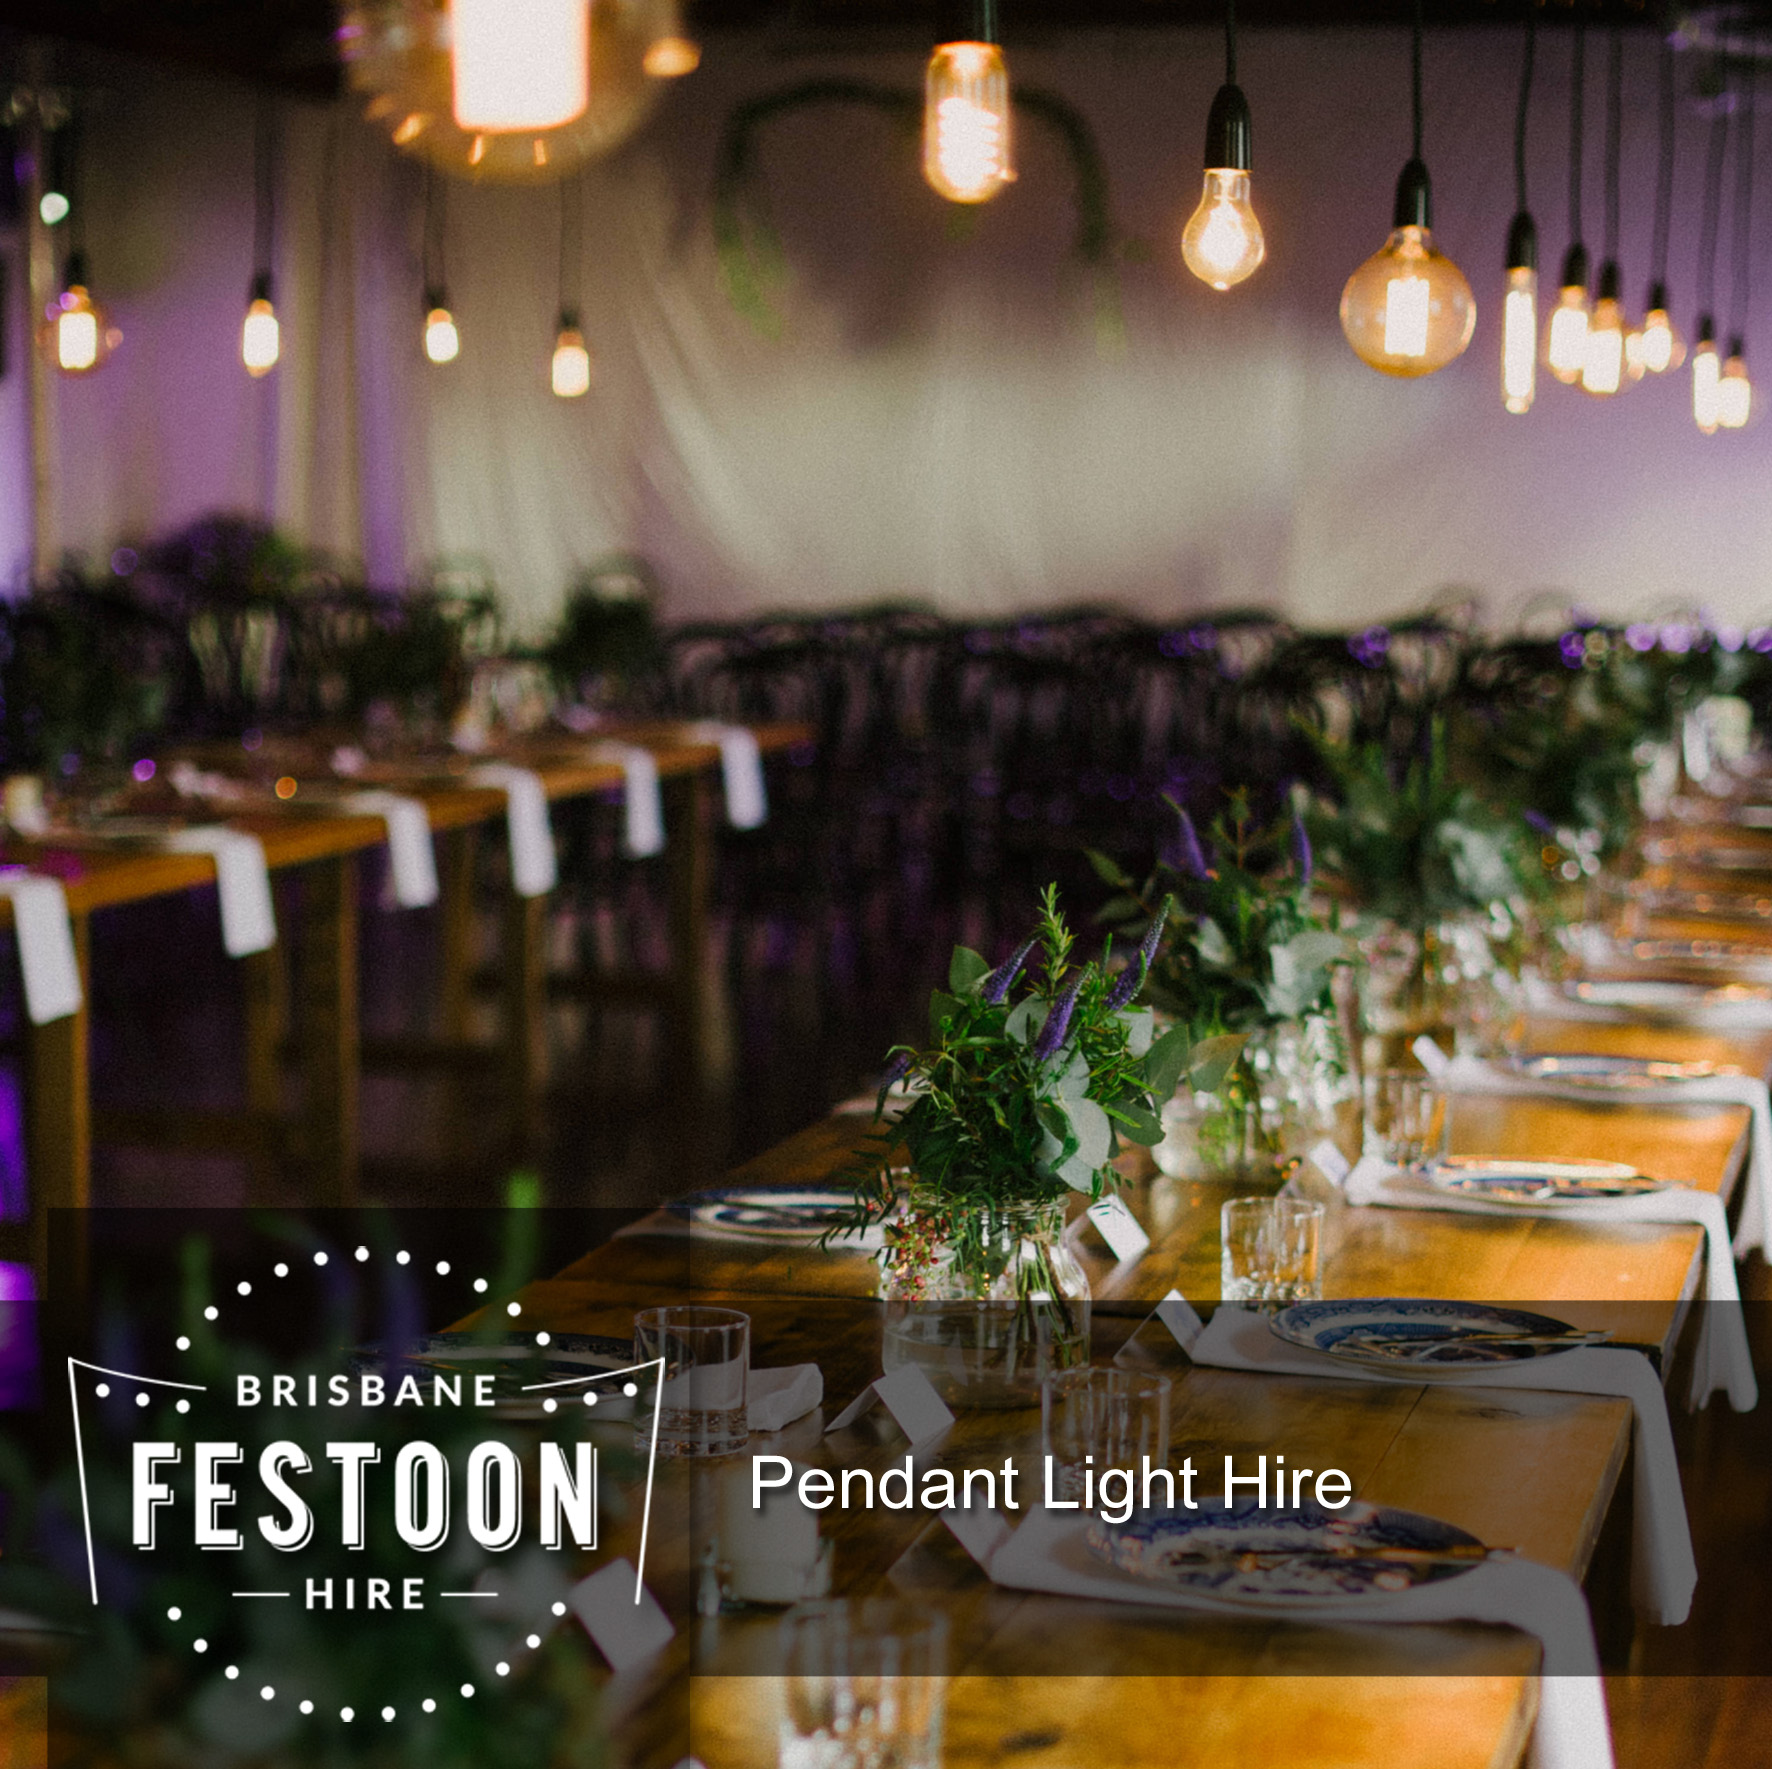 Brisbane Festoon Hire - Pendant Light Hire 2.jpg